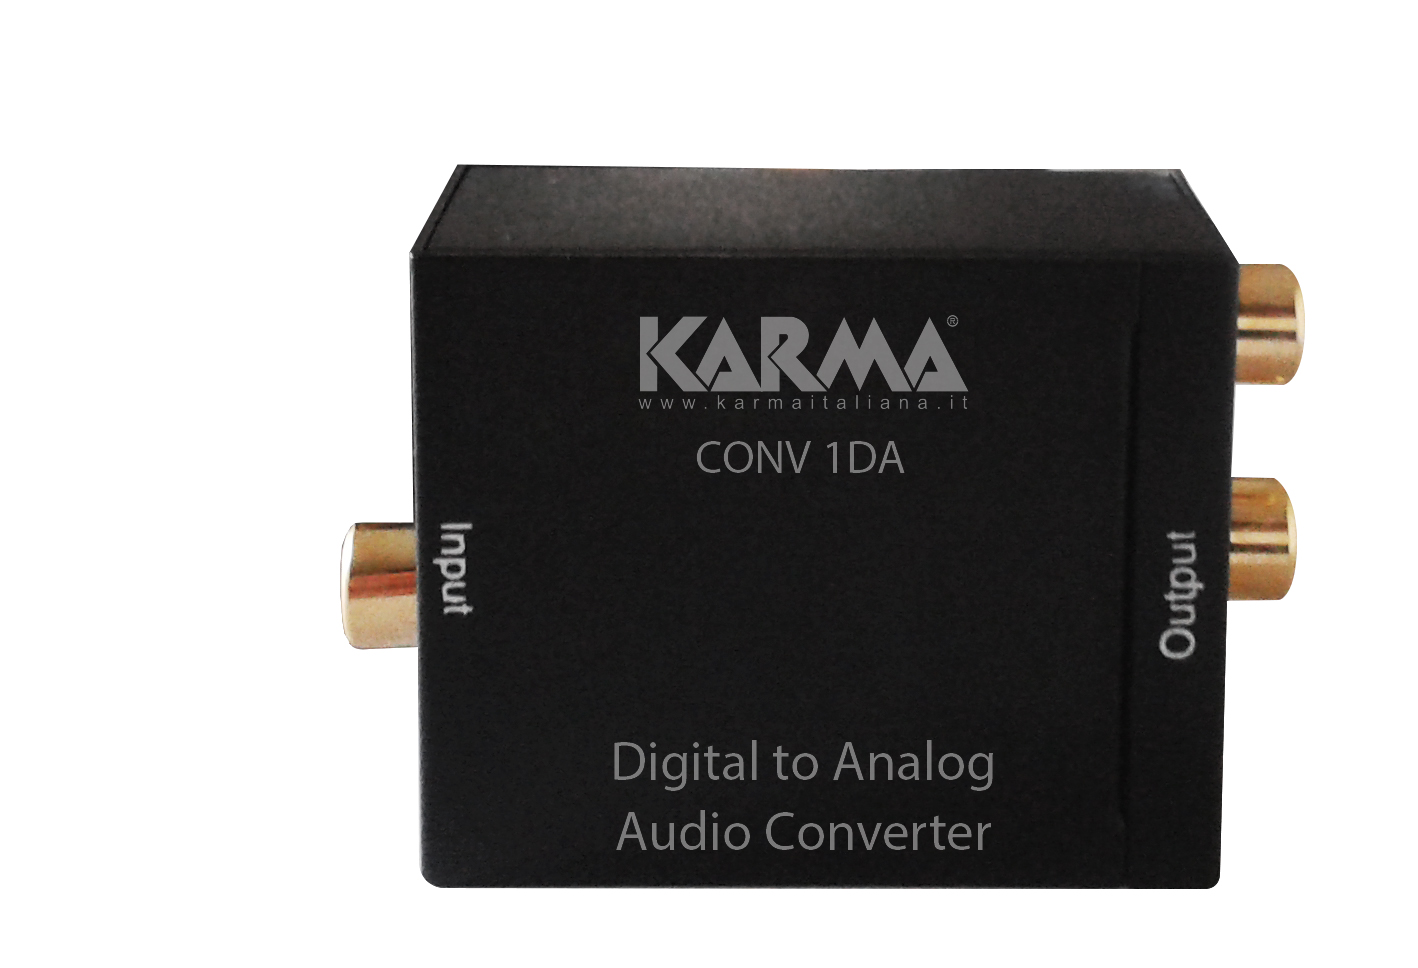 Convertitore audio digitale - analogico KARMA CONV 1DA